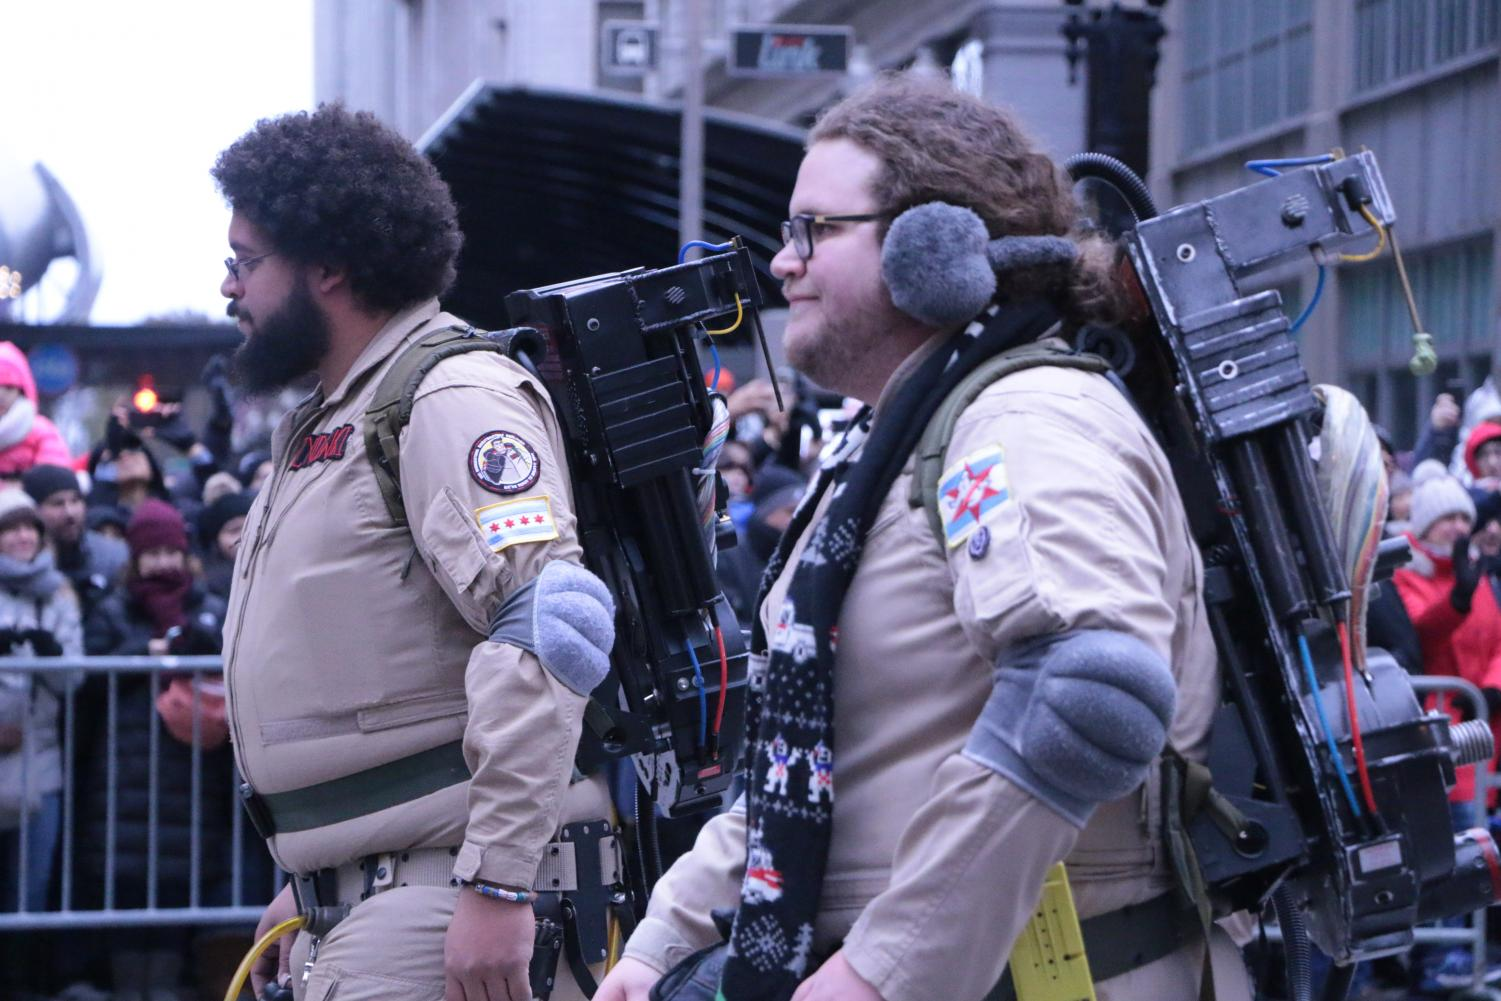 Windy+City+Ghostbusters+looking+for+ghosts.